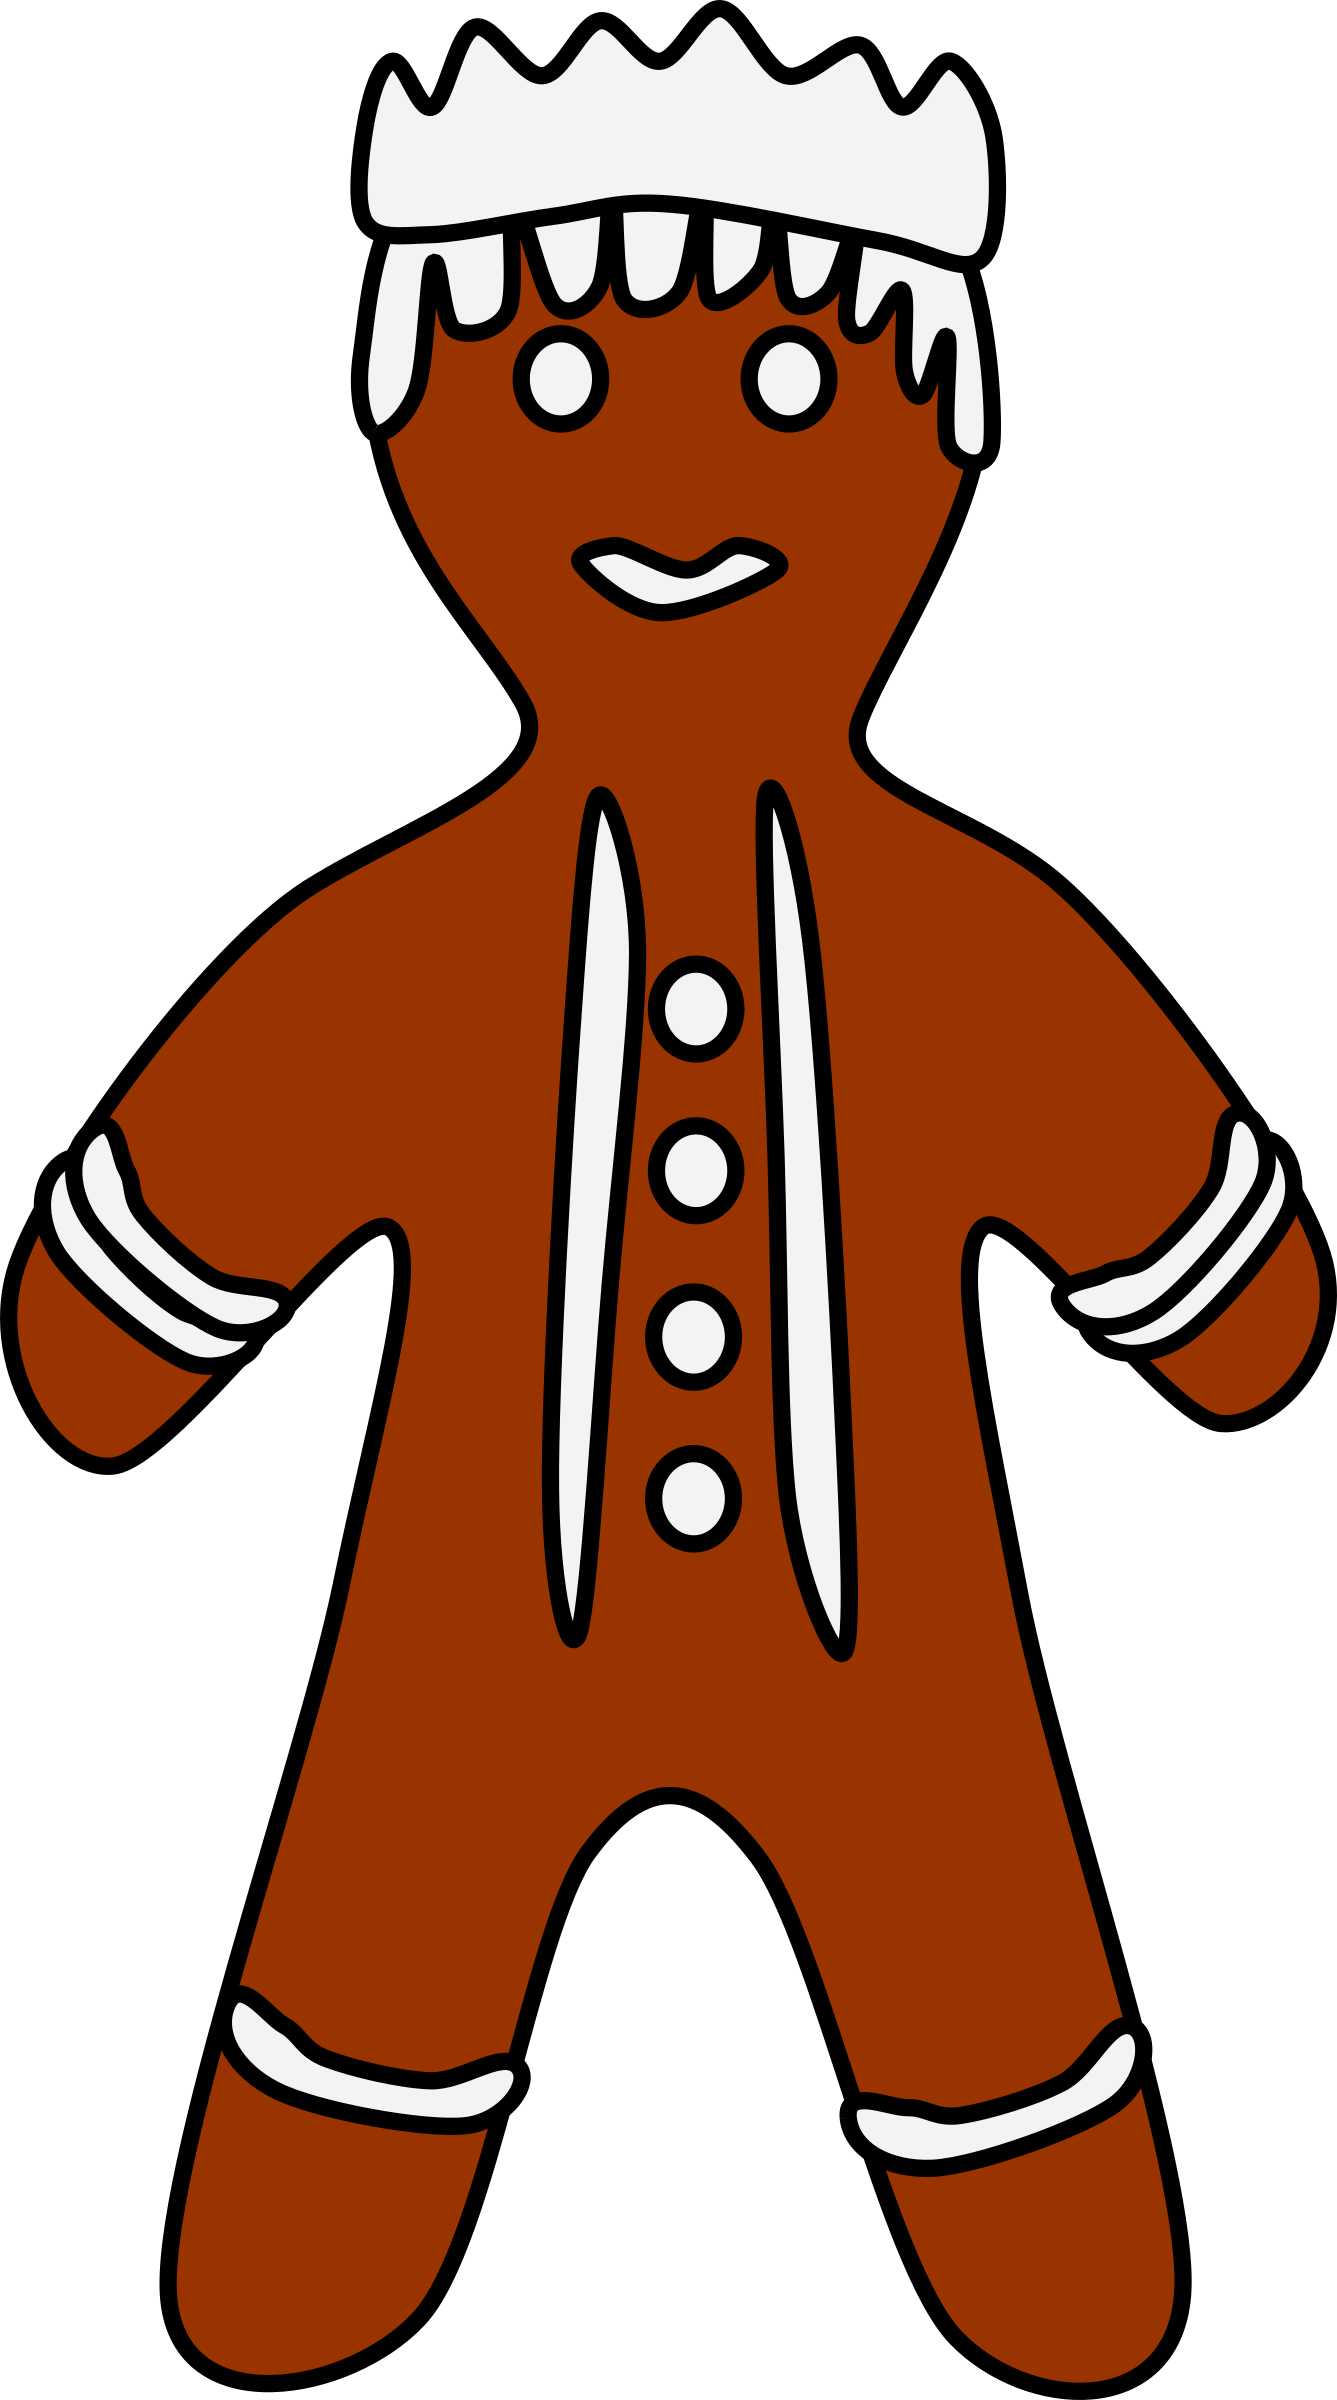 Gingerbread clipart big. King wiseman image png